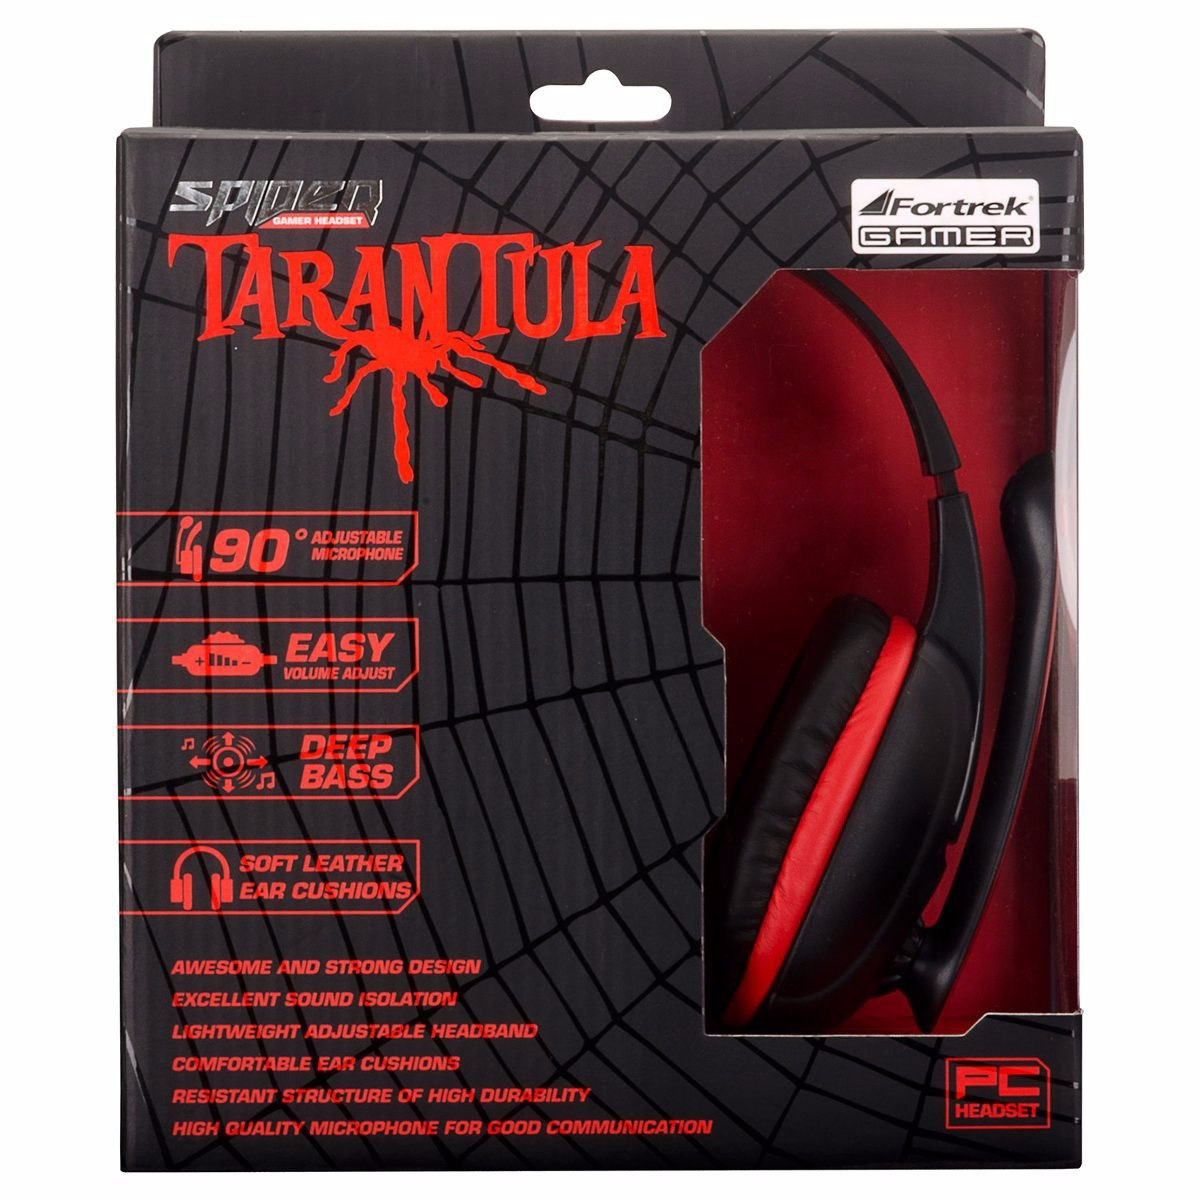 Headset Gamer Spider Tarantula PC/XBOX 360 SHS-702 Fortrek